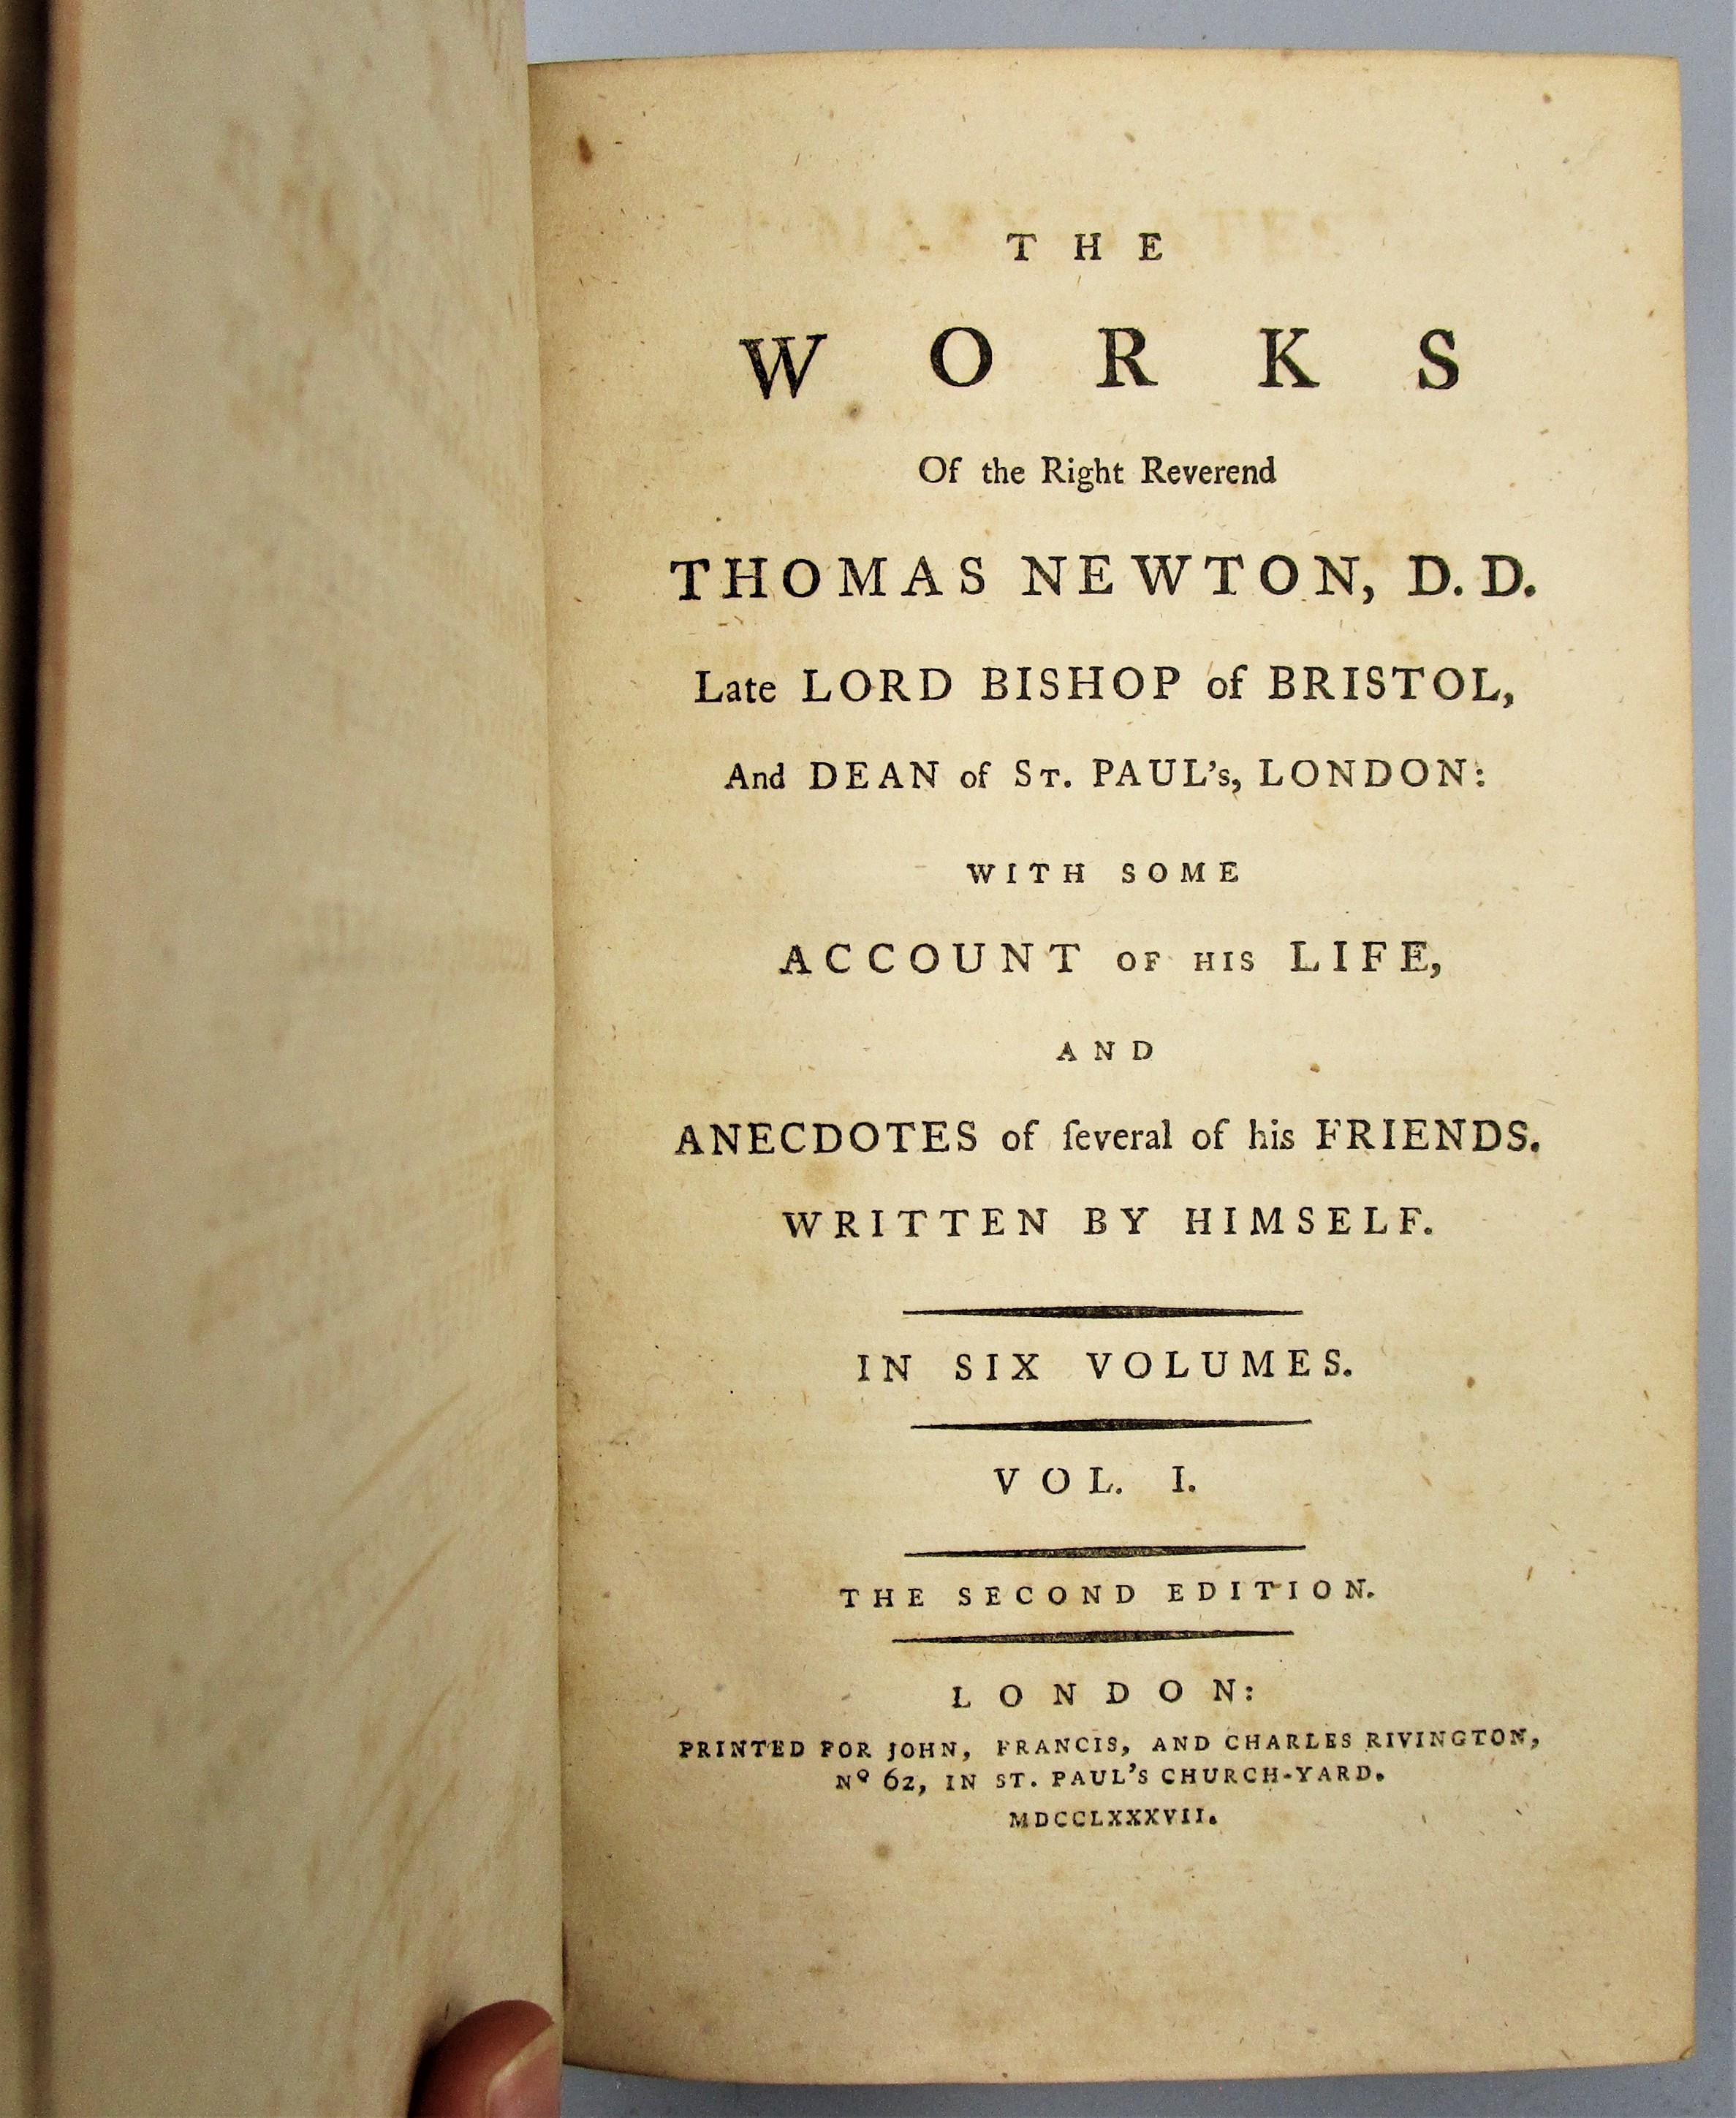 WORKS OF THE RIGHT REV. THOMAS NEWTON -1787 [6 Vols]